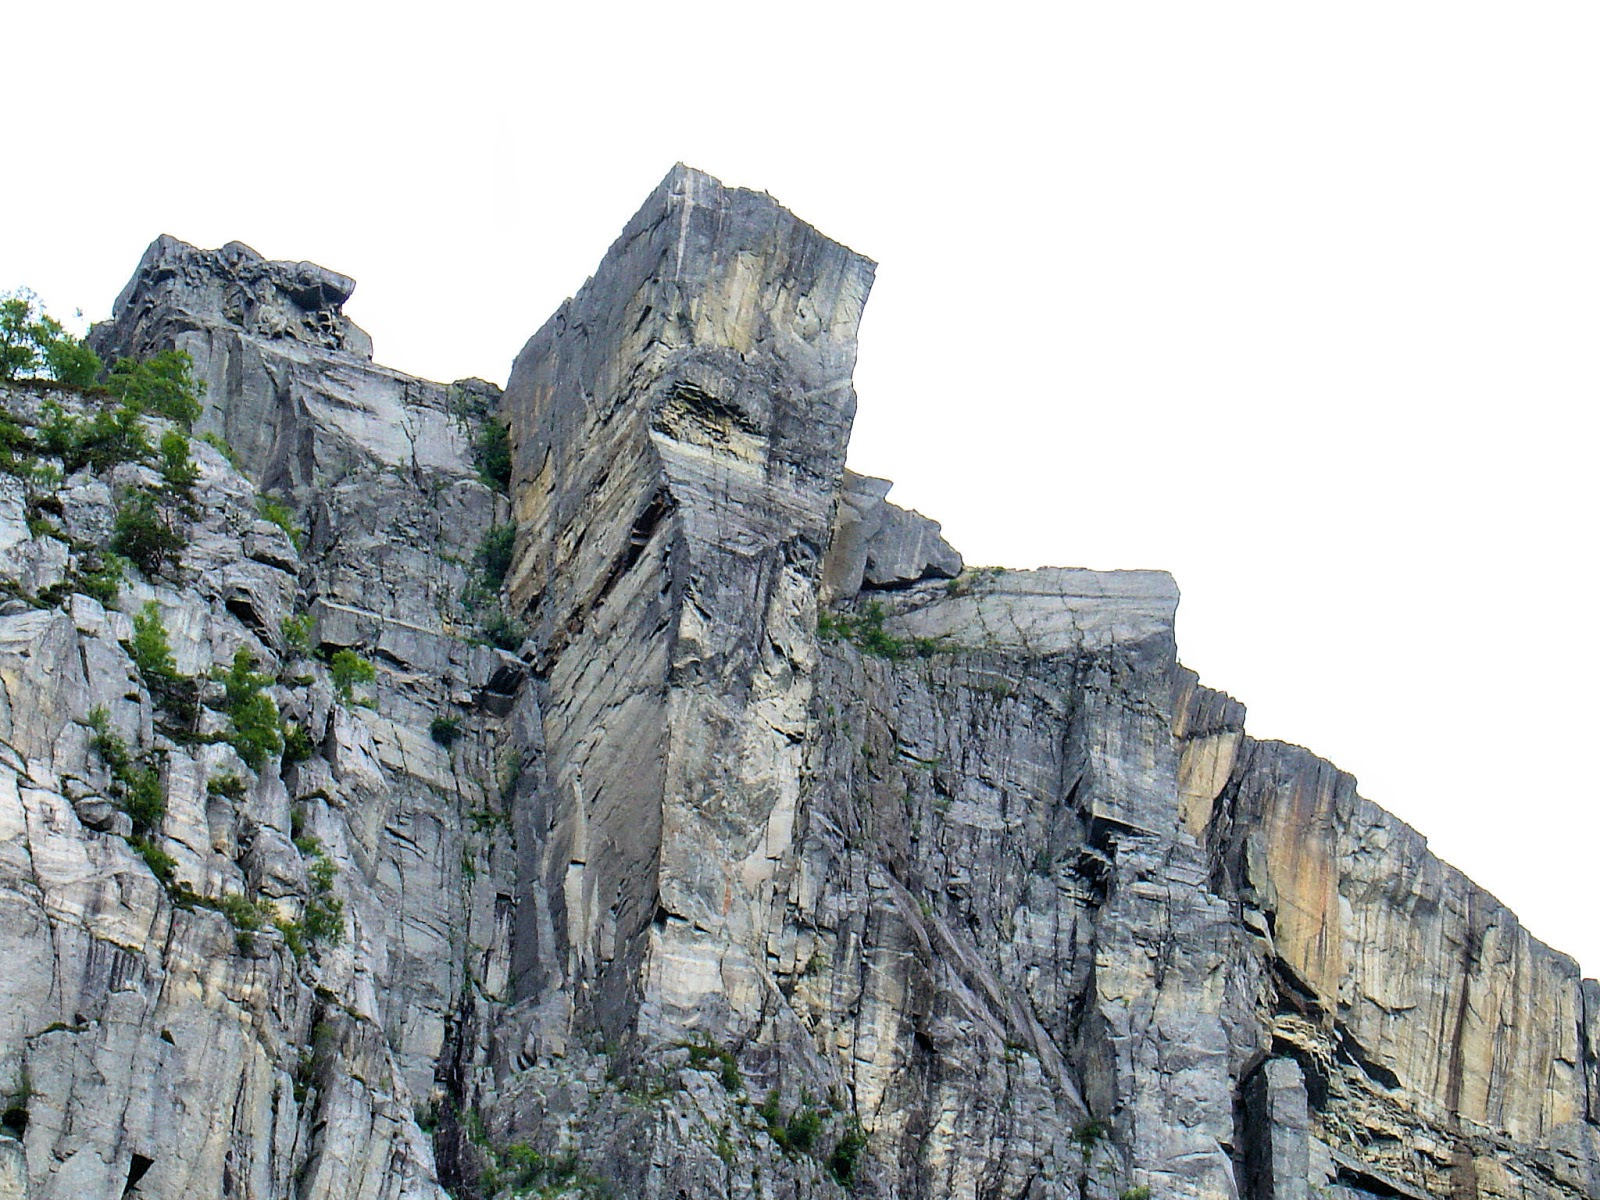 That squared rocky outcrop is Pulpit Rock, towering 2,000 feet above the Lysefjord.